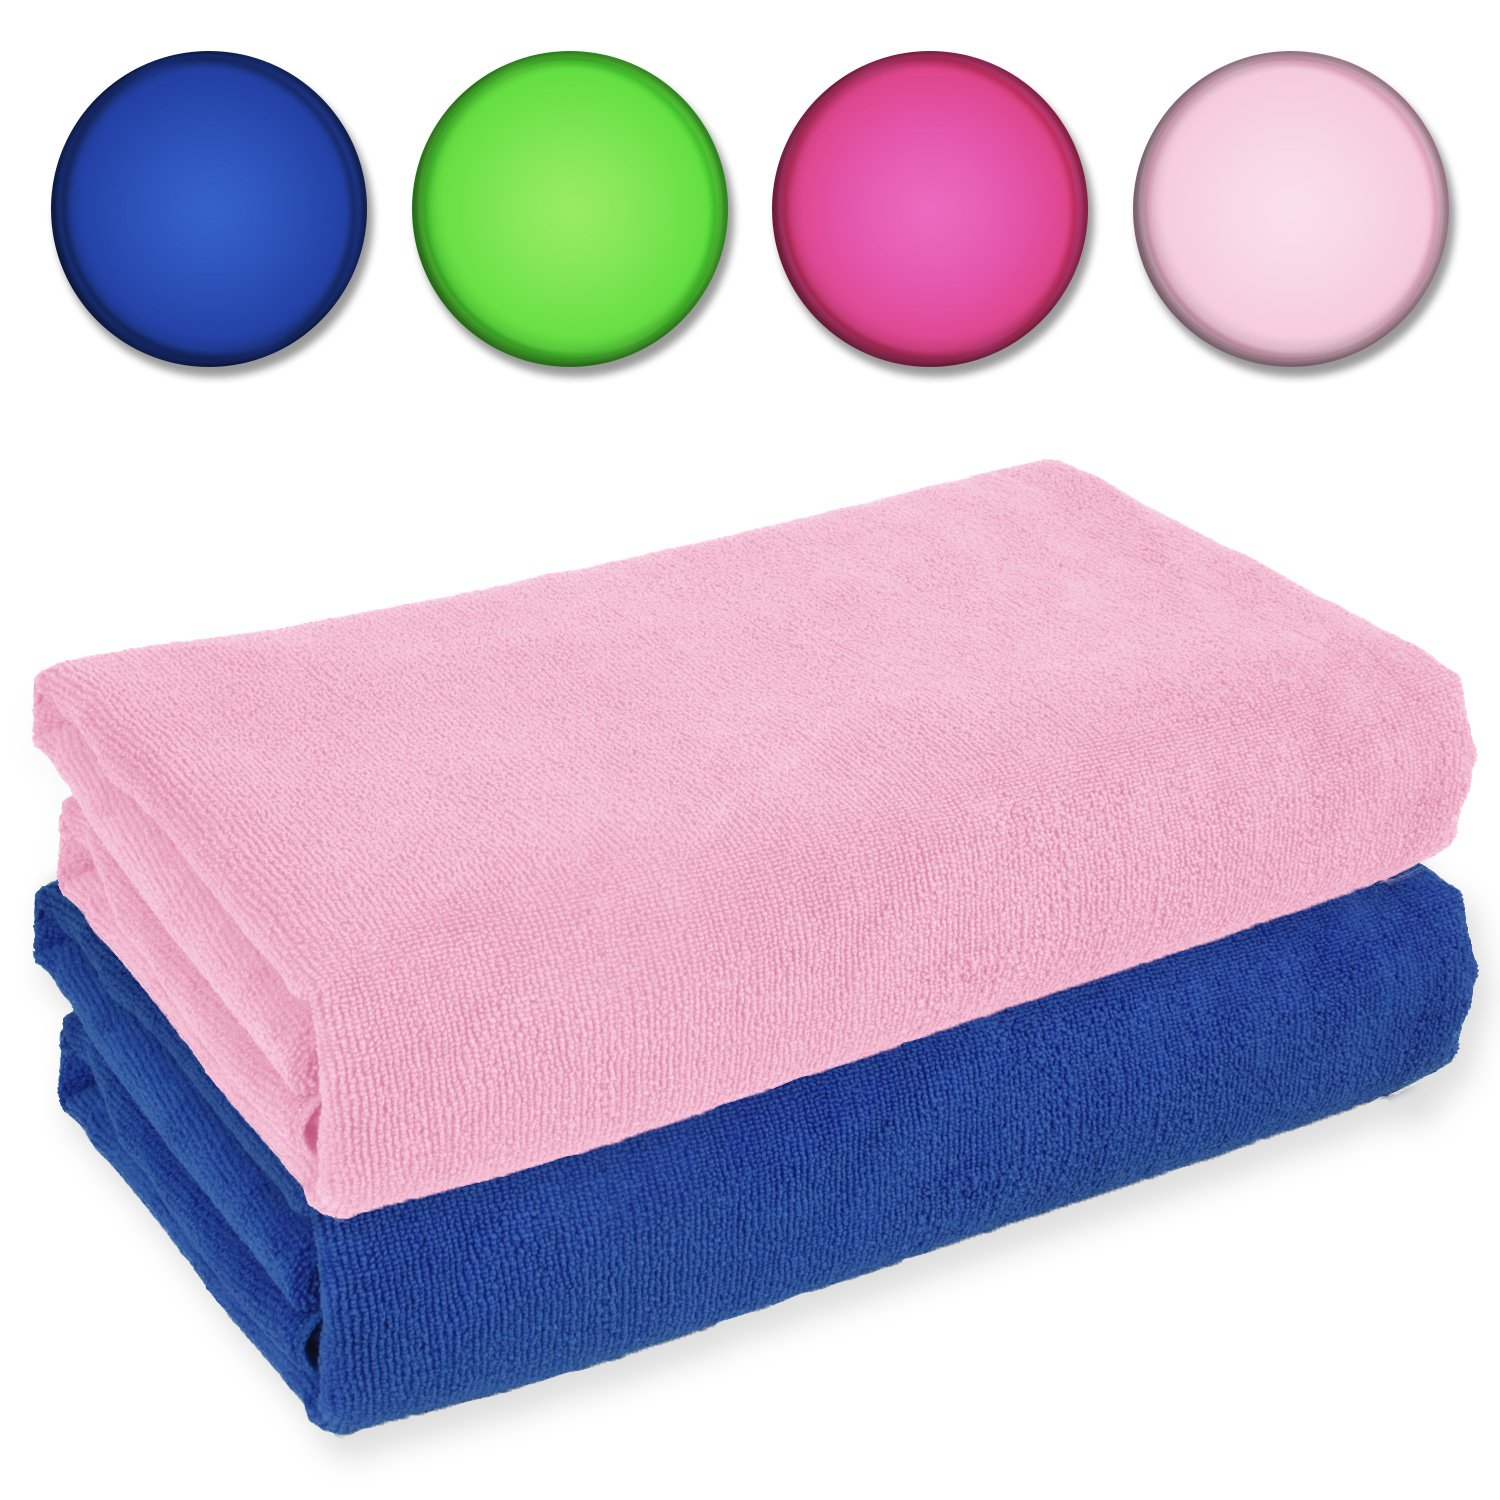 Belmalia 2 Microfibre Towels XXL extremely absorbent and quick-drying 180 x 75 cm Blue + Green Belmalia GmbH BM-1001gr-bl